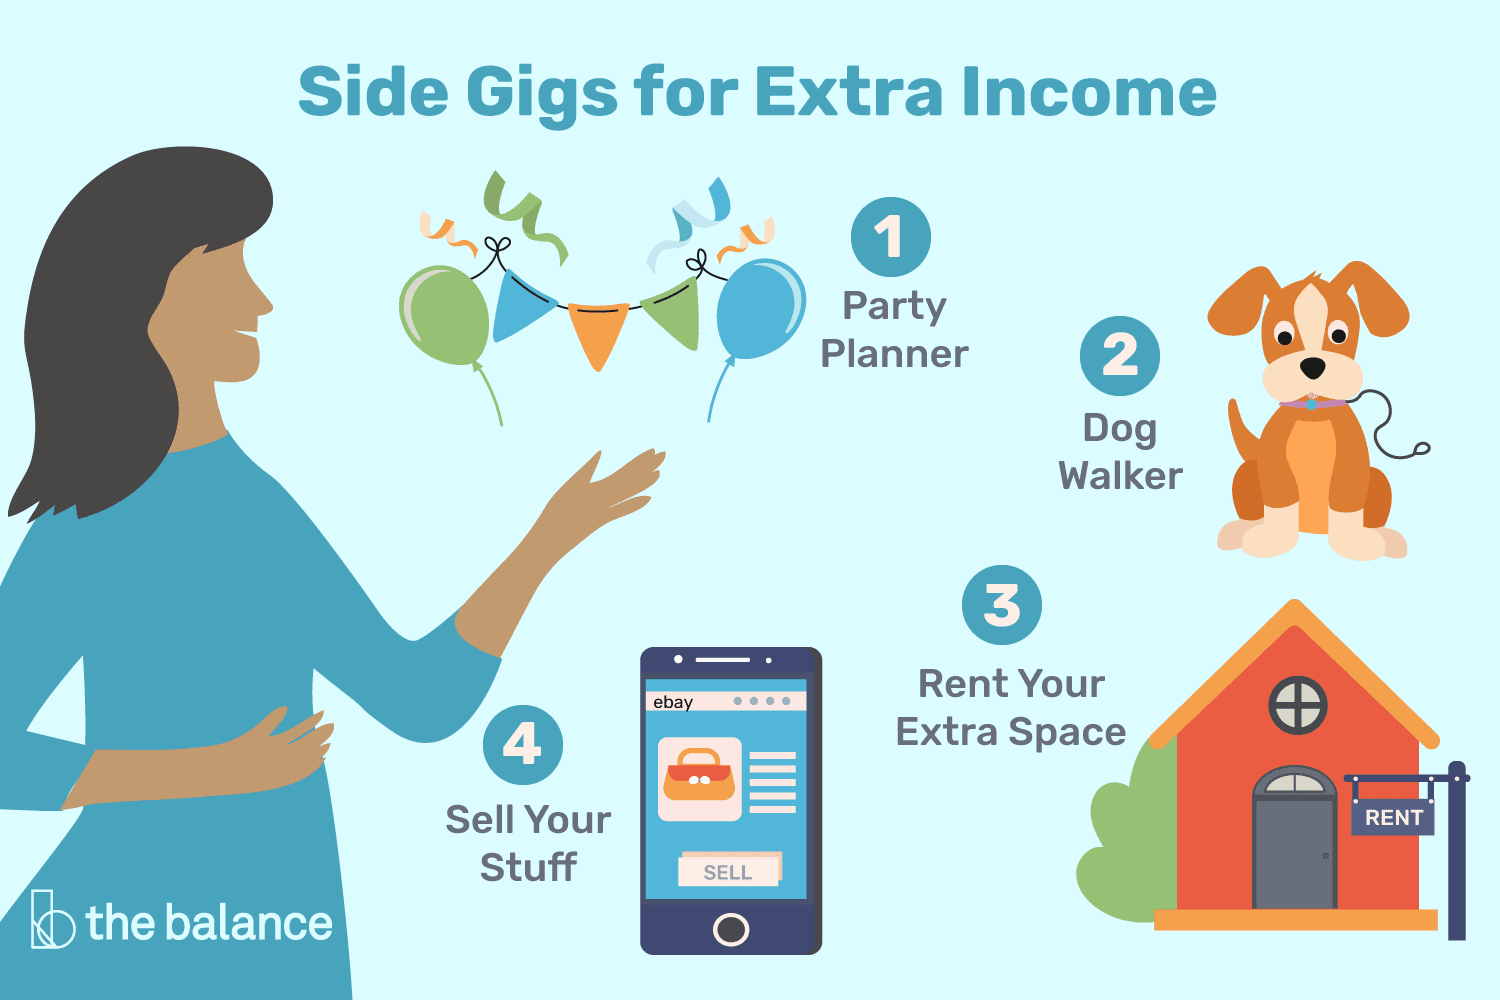 Side Gigs for Extra Income